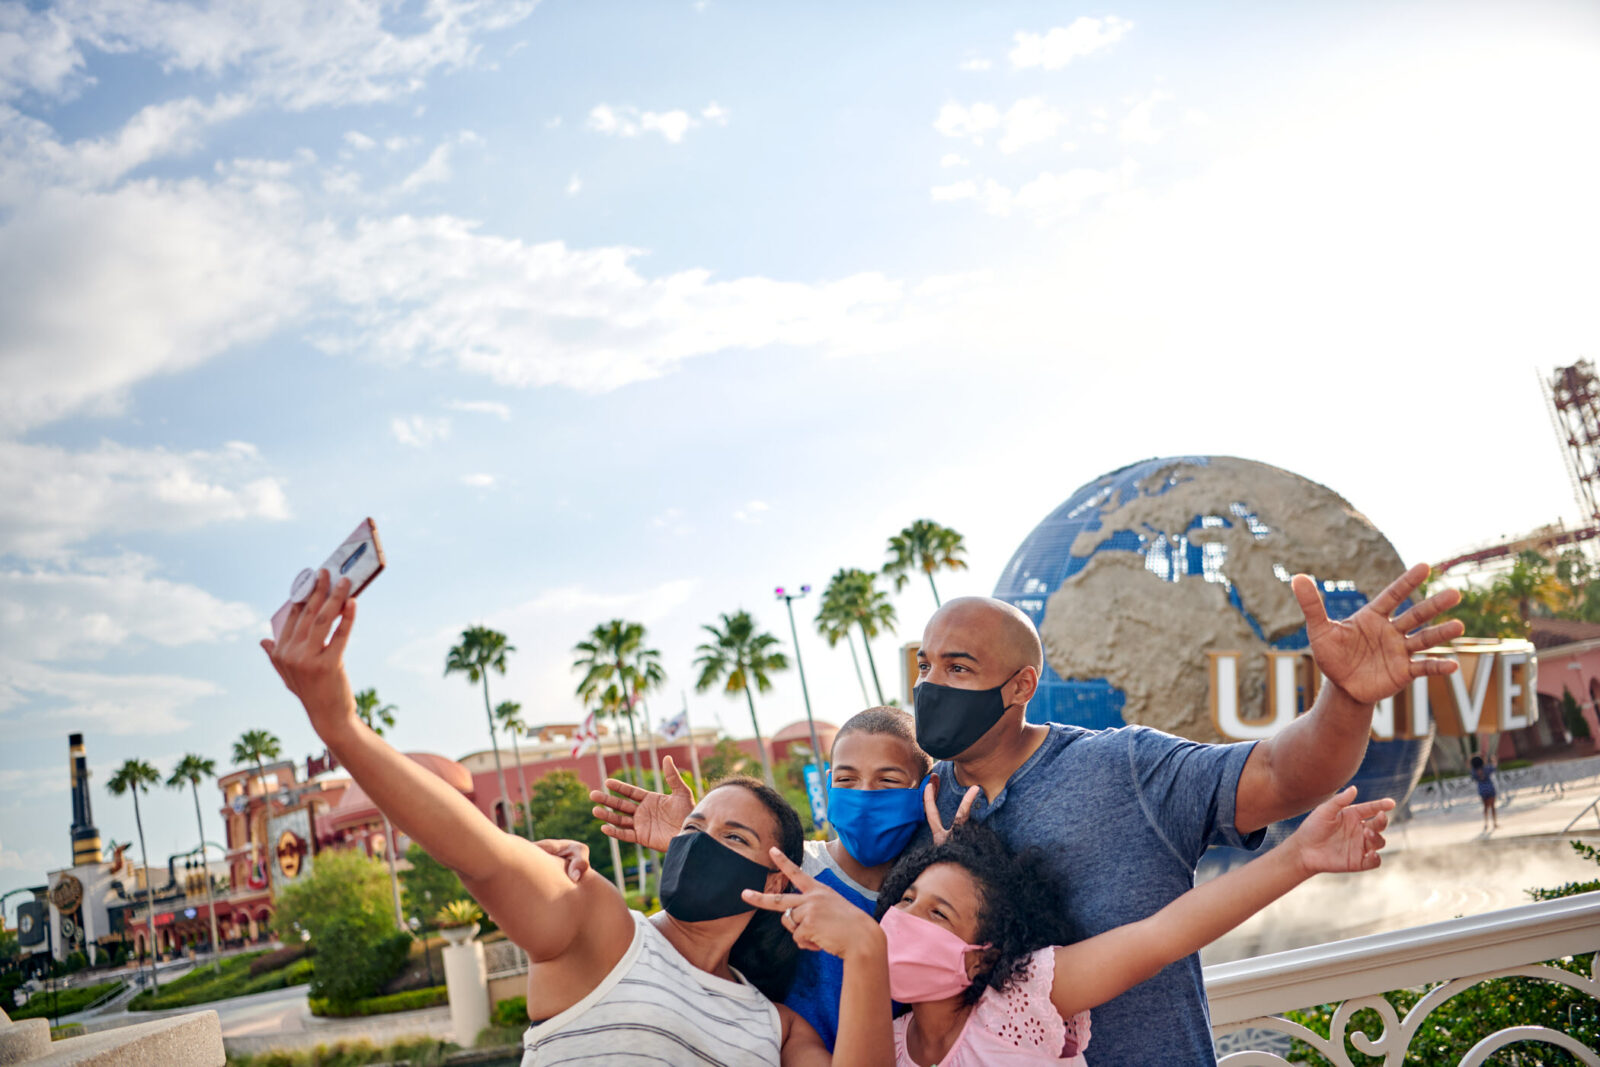 On the Go in the Parks January 2021 Universal Orlando Resort